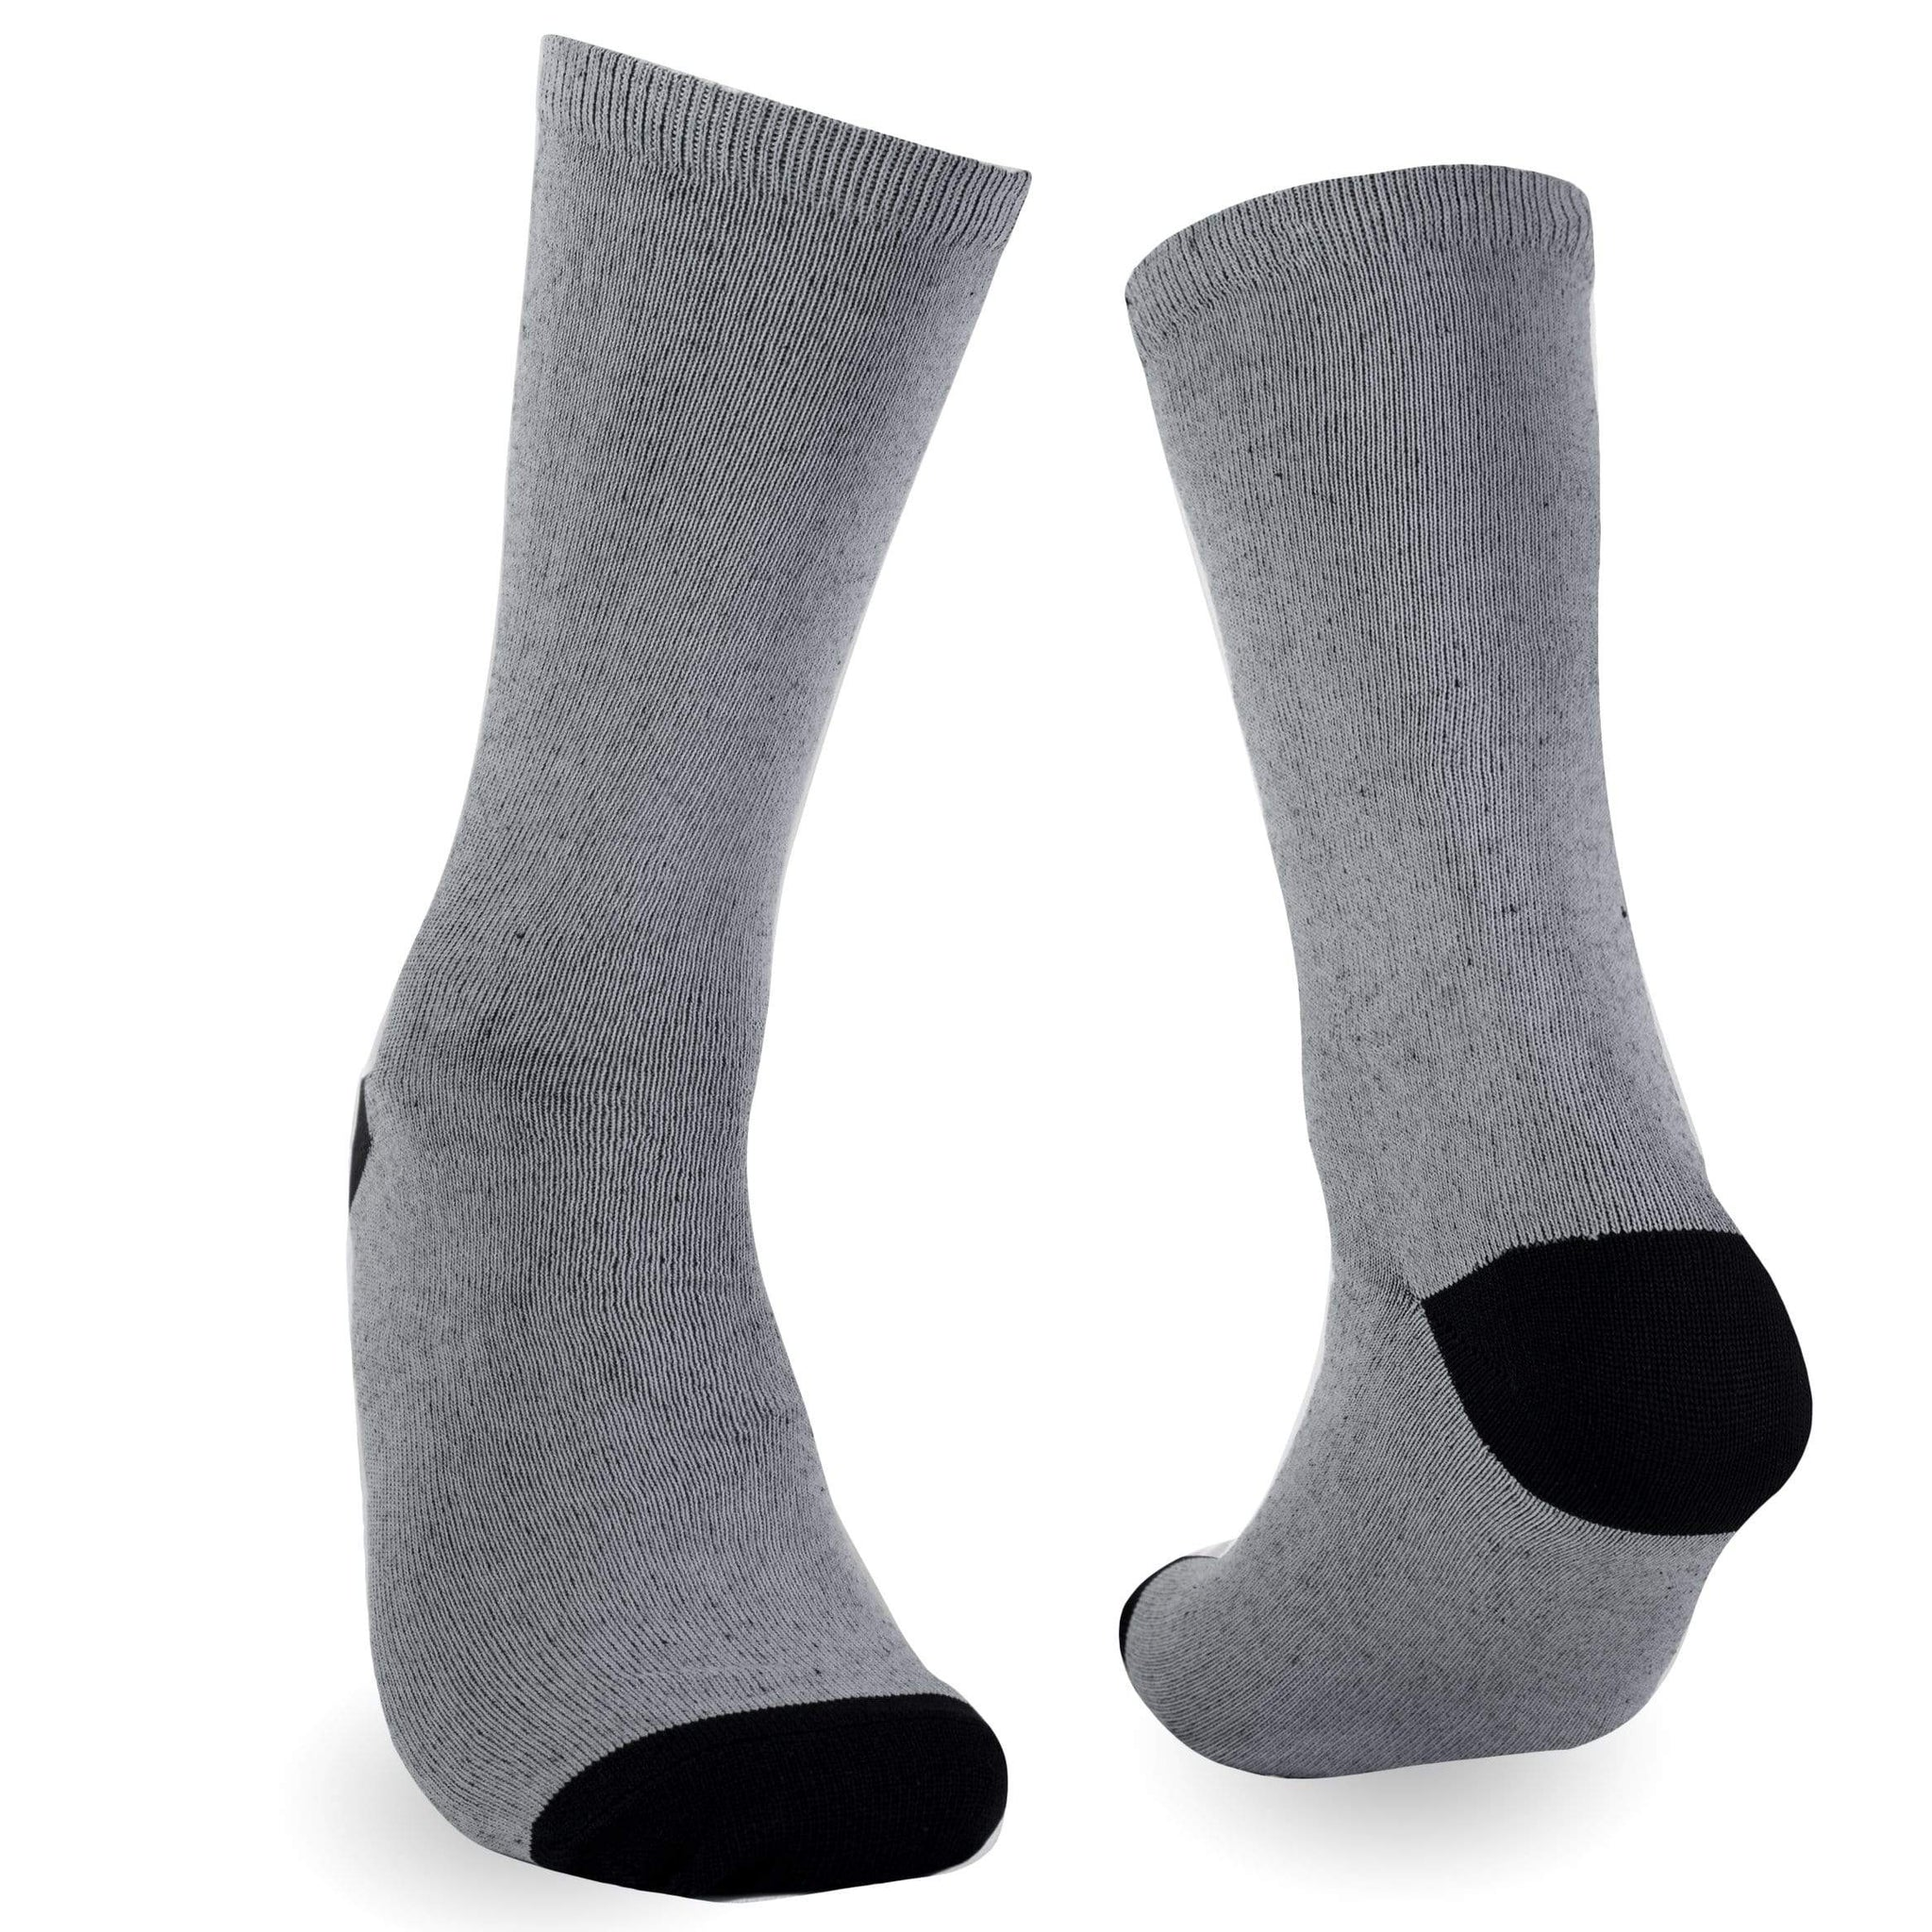 Blank Dress Socks